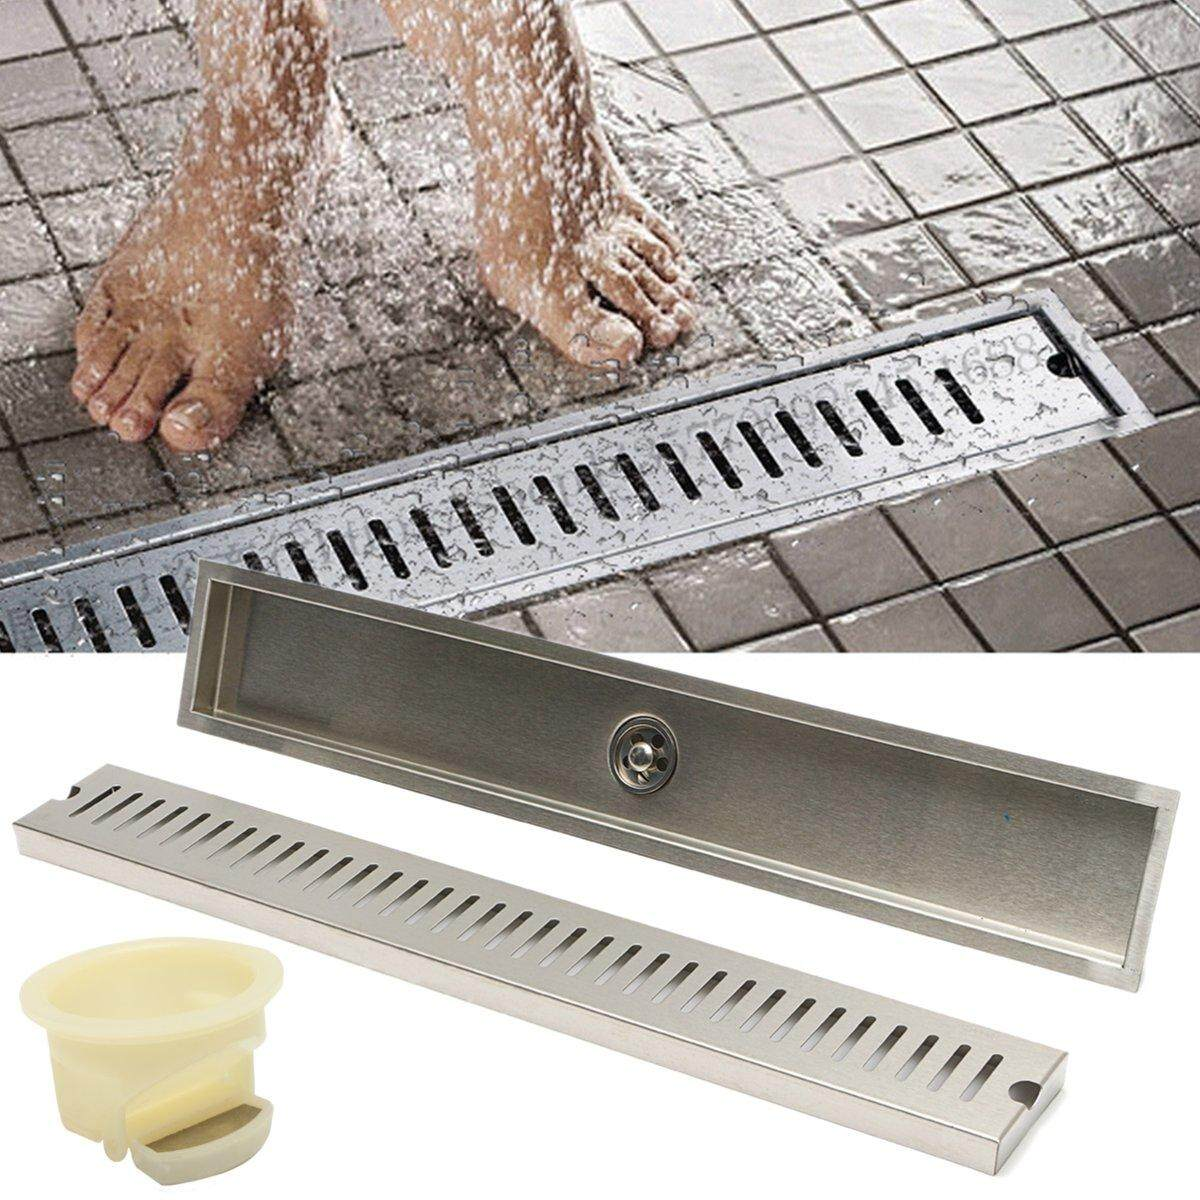 60x10cm 24inch Stainless Steel Shower Tile Insert Linear Drain Grate Bath Floor By Channy.